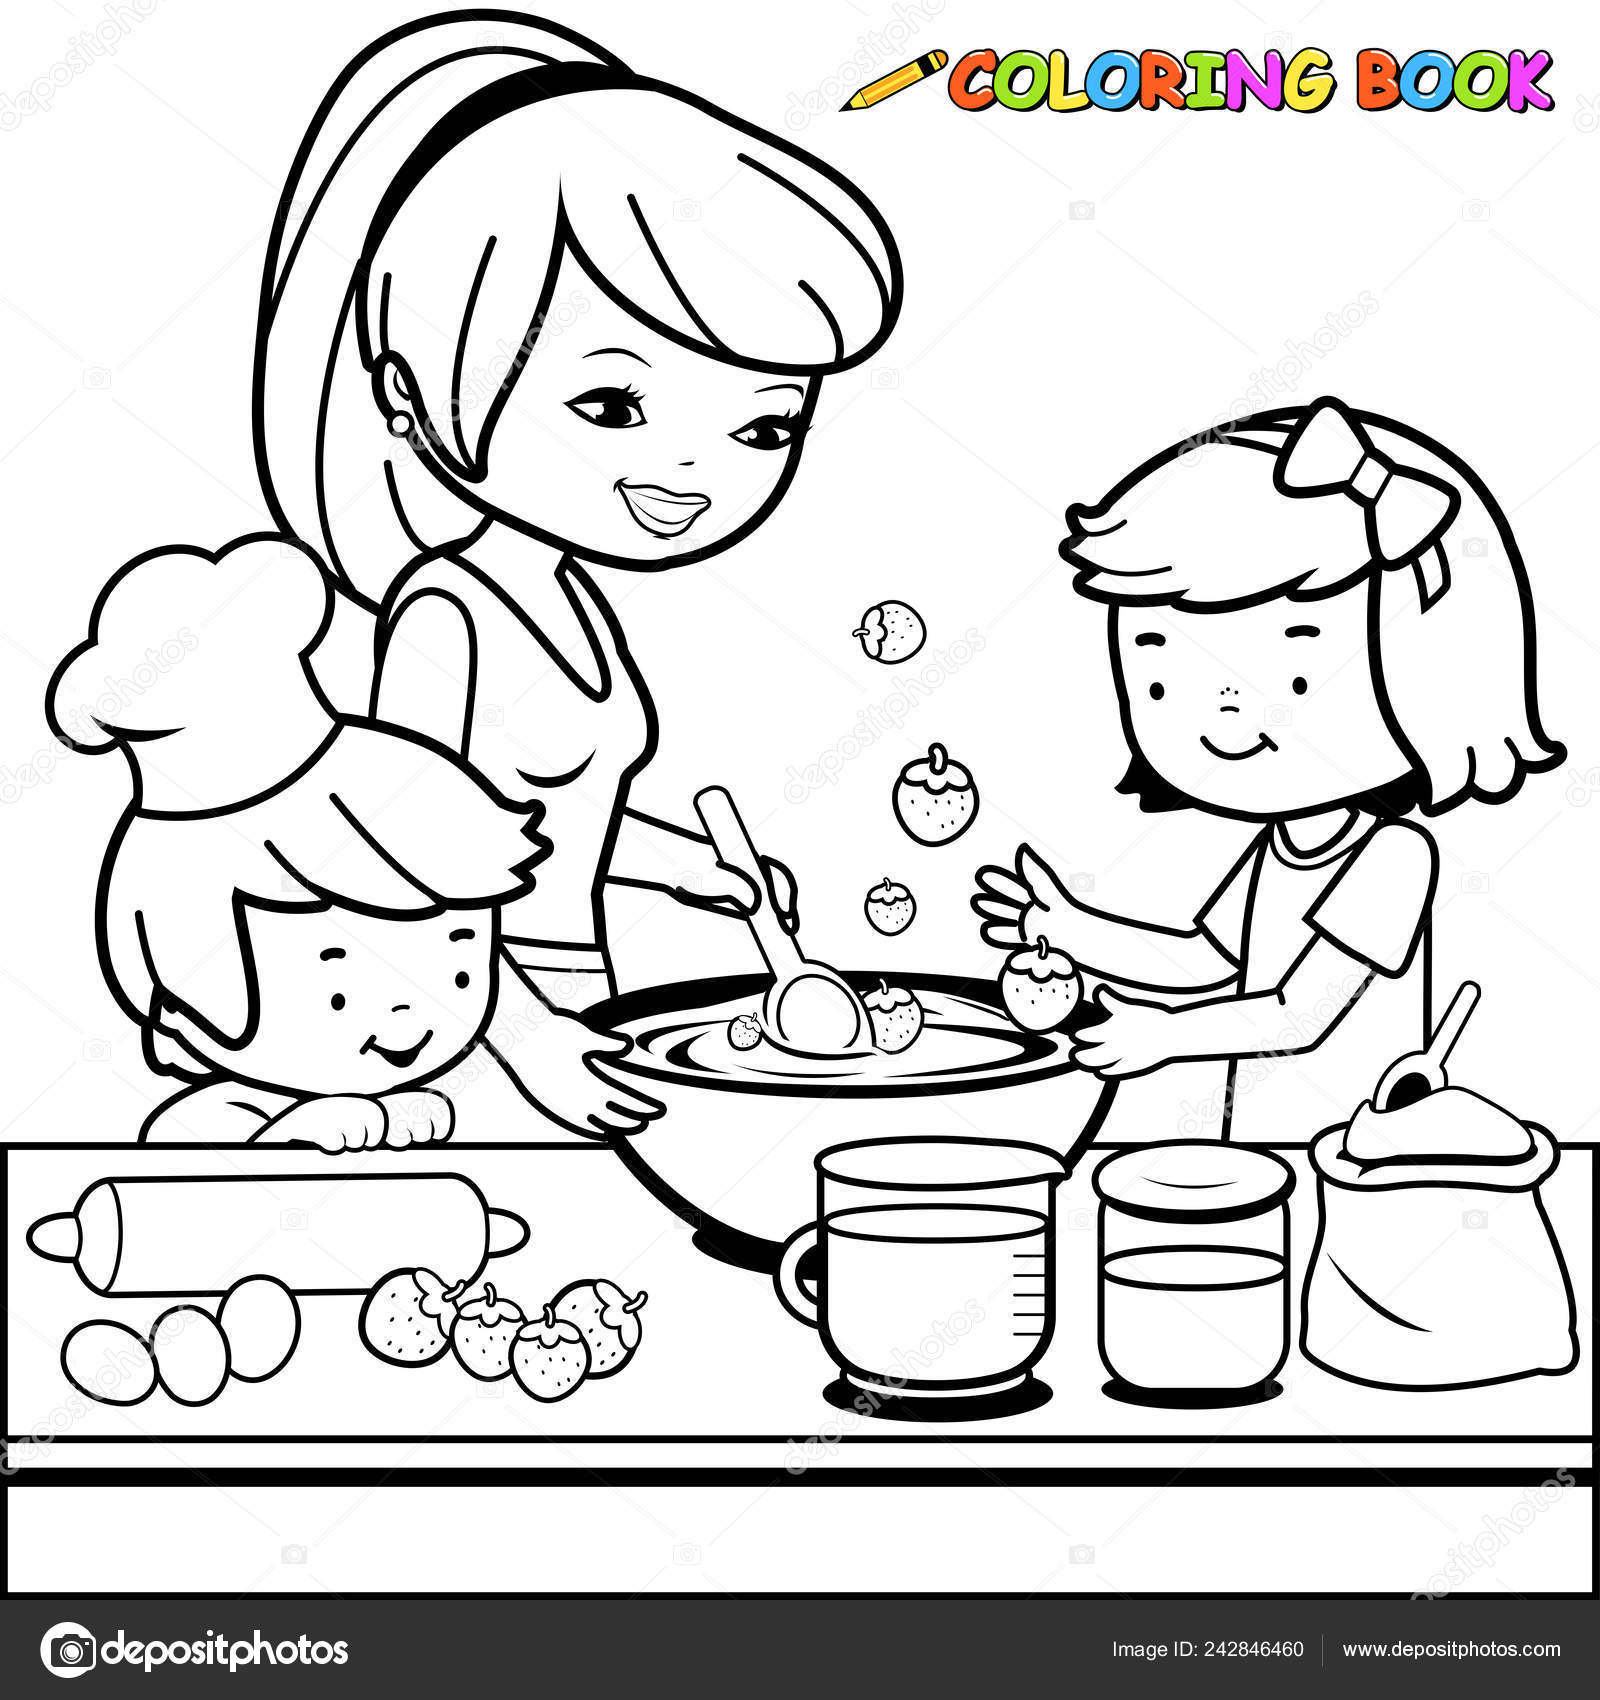 - Mother Children Cooking Kitchen Black White Coloring Book Page